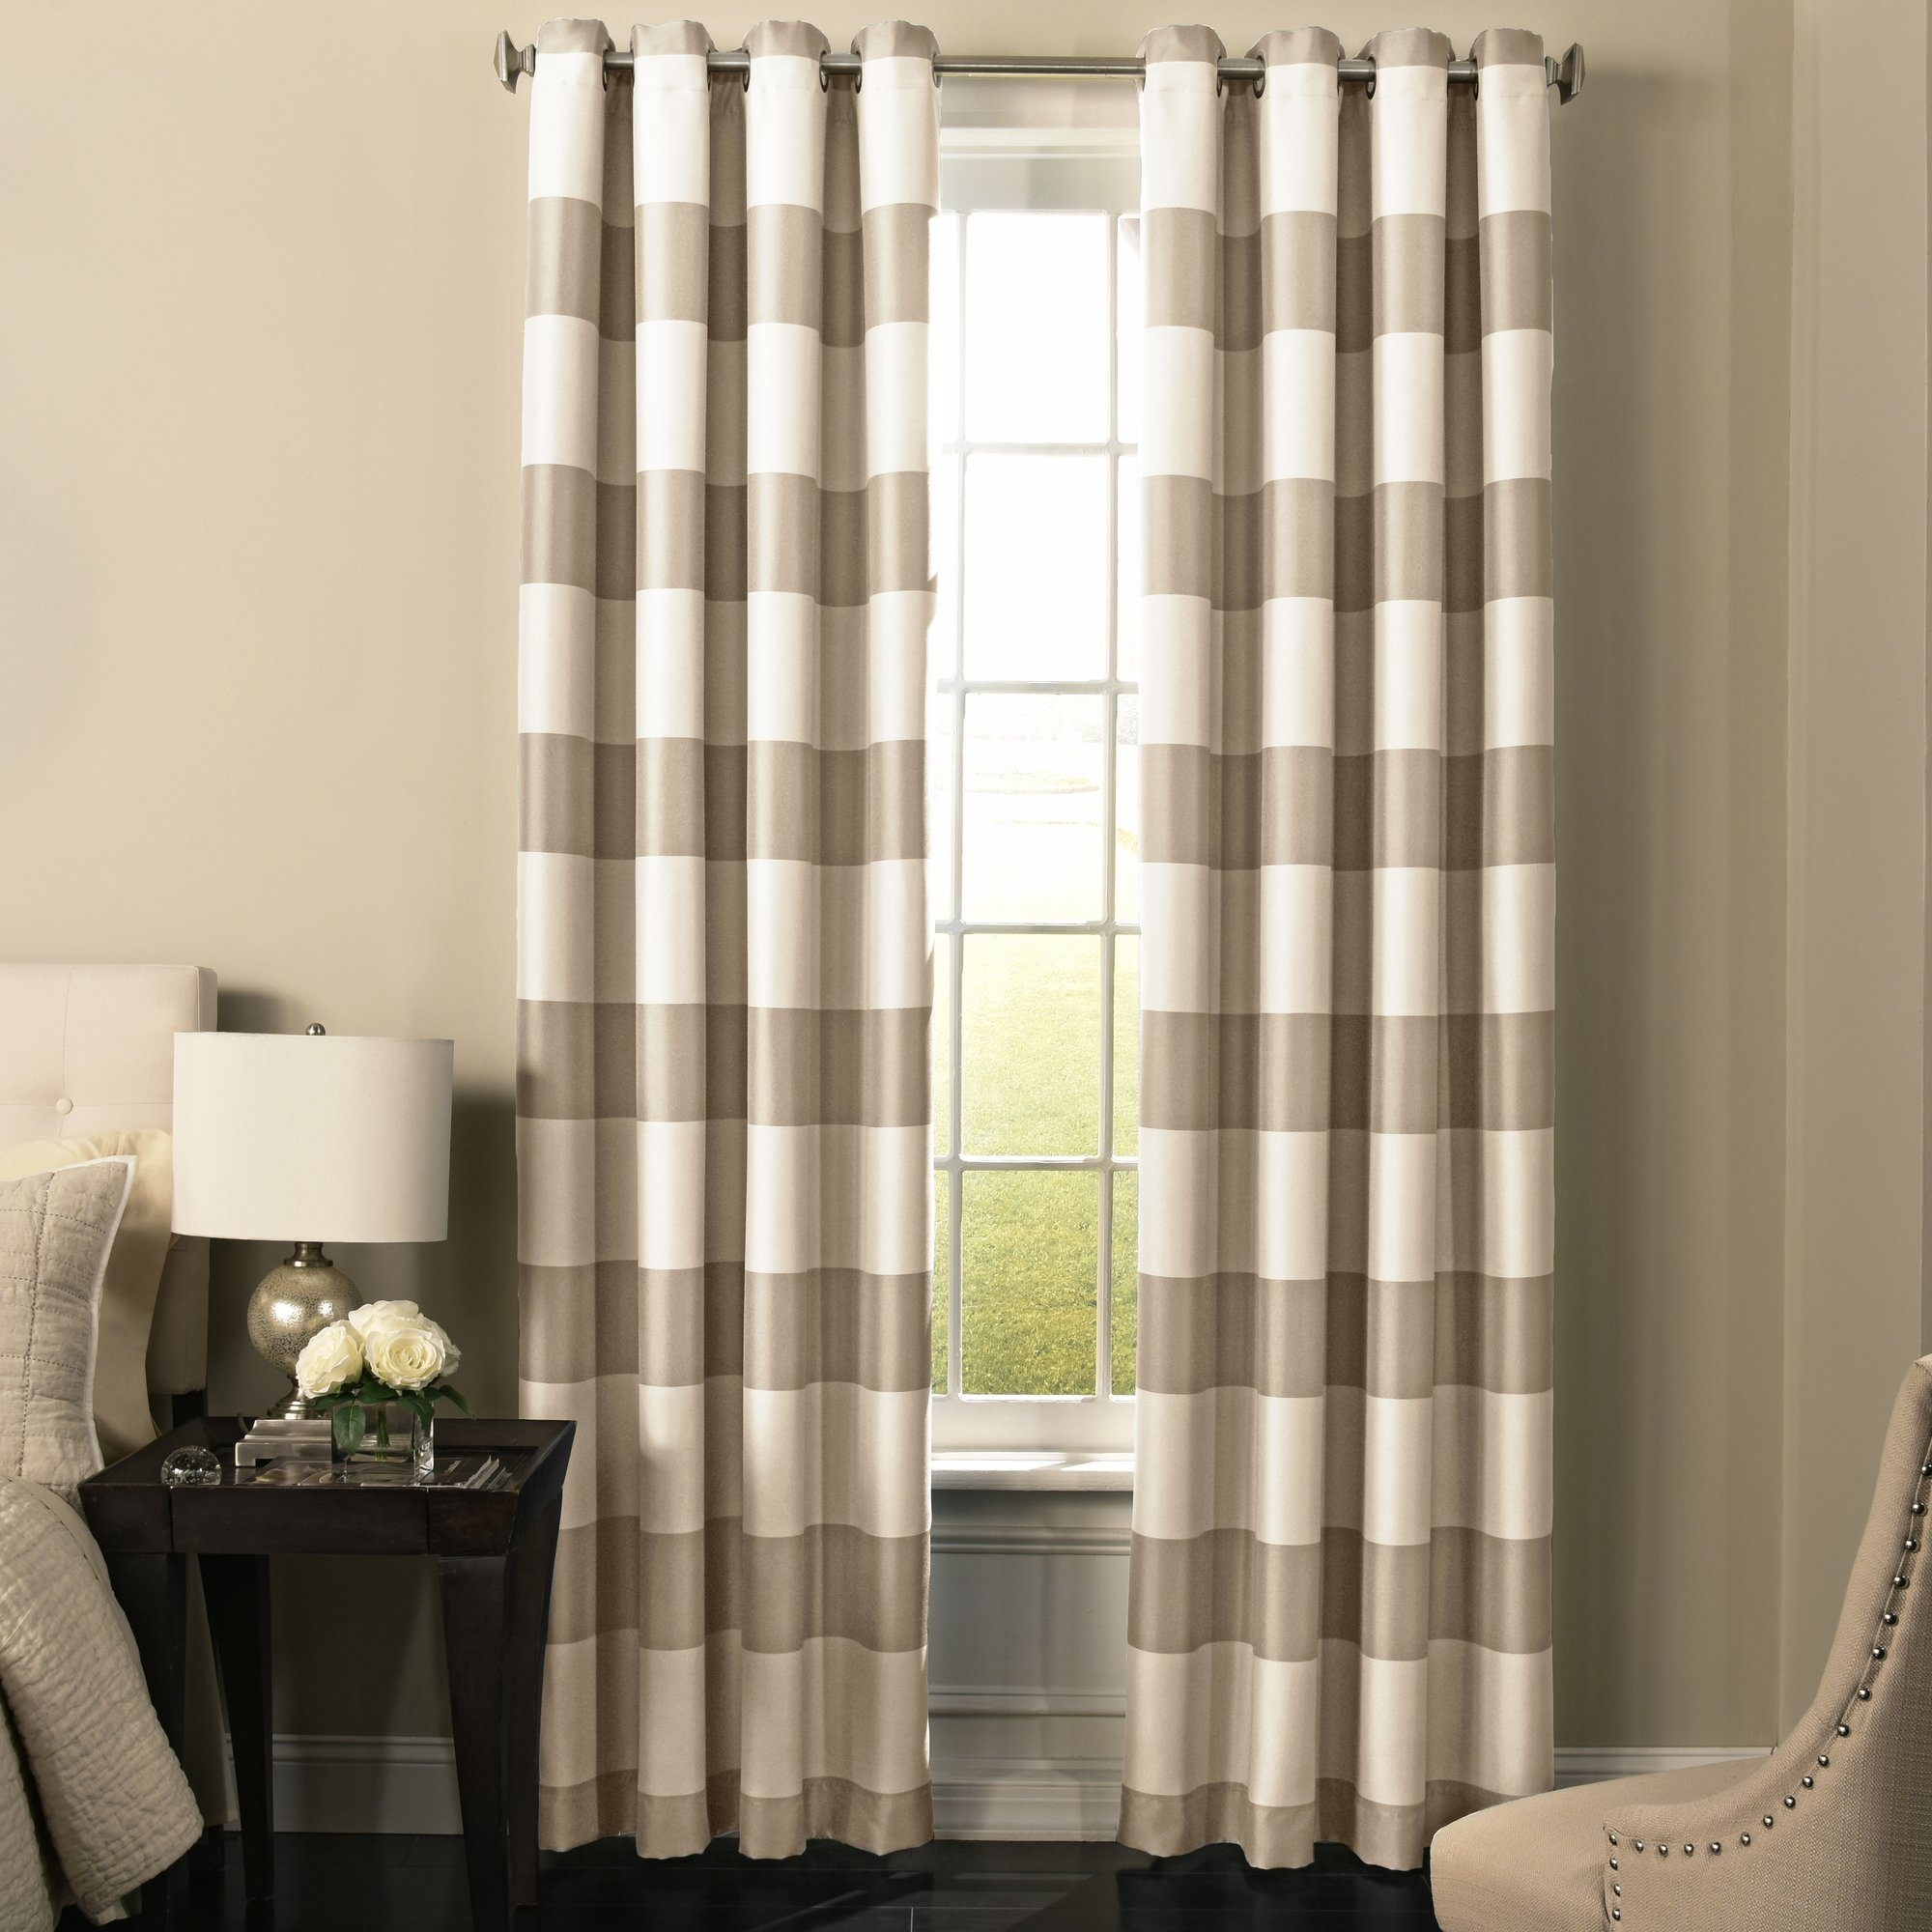 Decor Rug Stripe Curtains Grey And Ivory Curtains Turquoise With Regard To Stripe Curtains (Image 11 of 25)